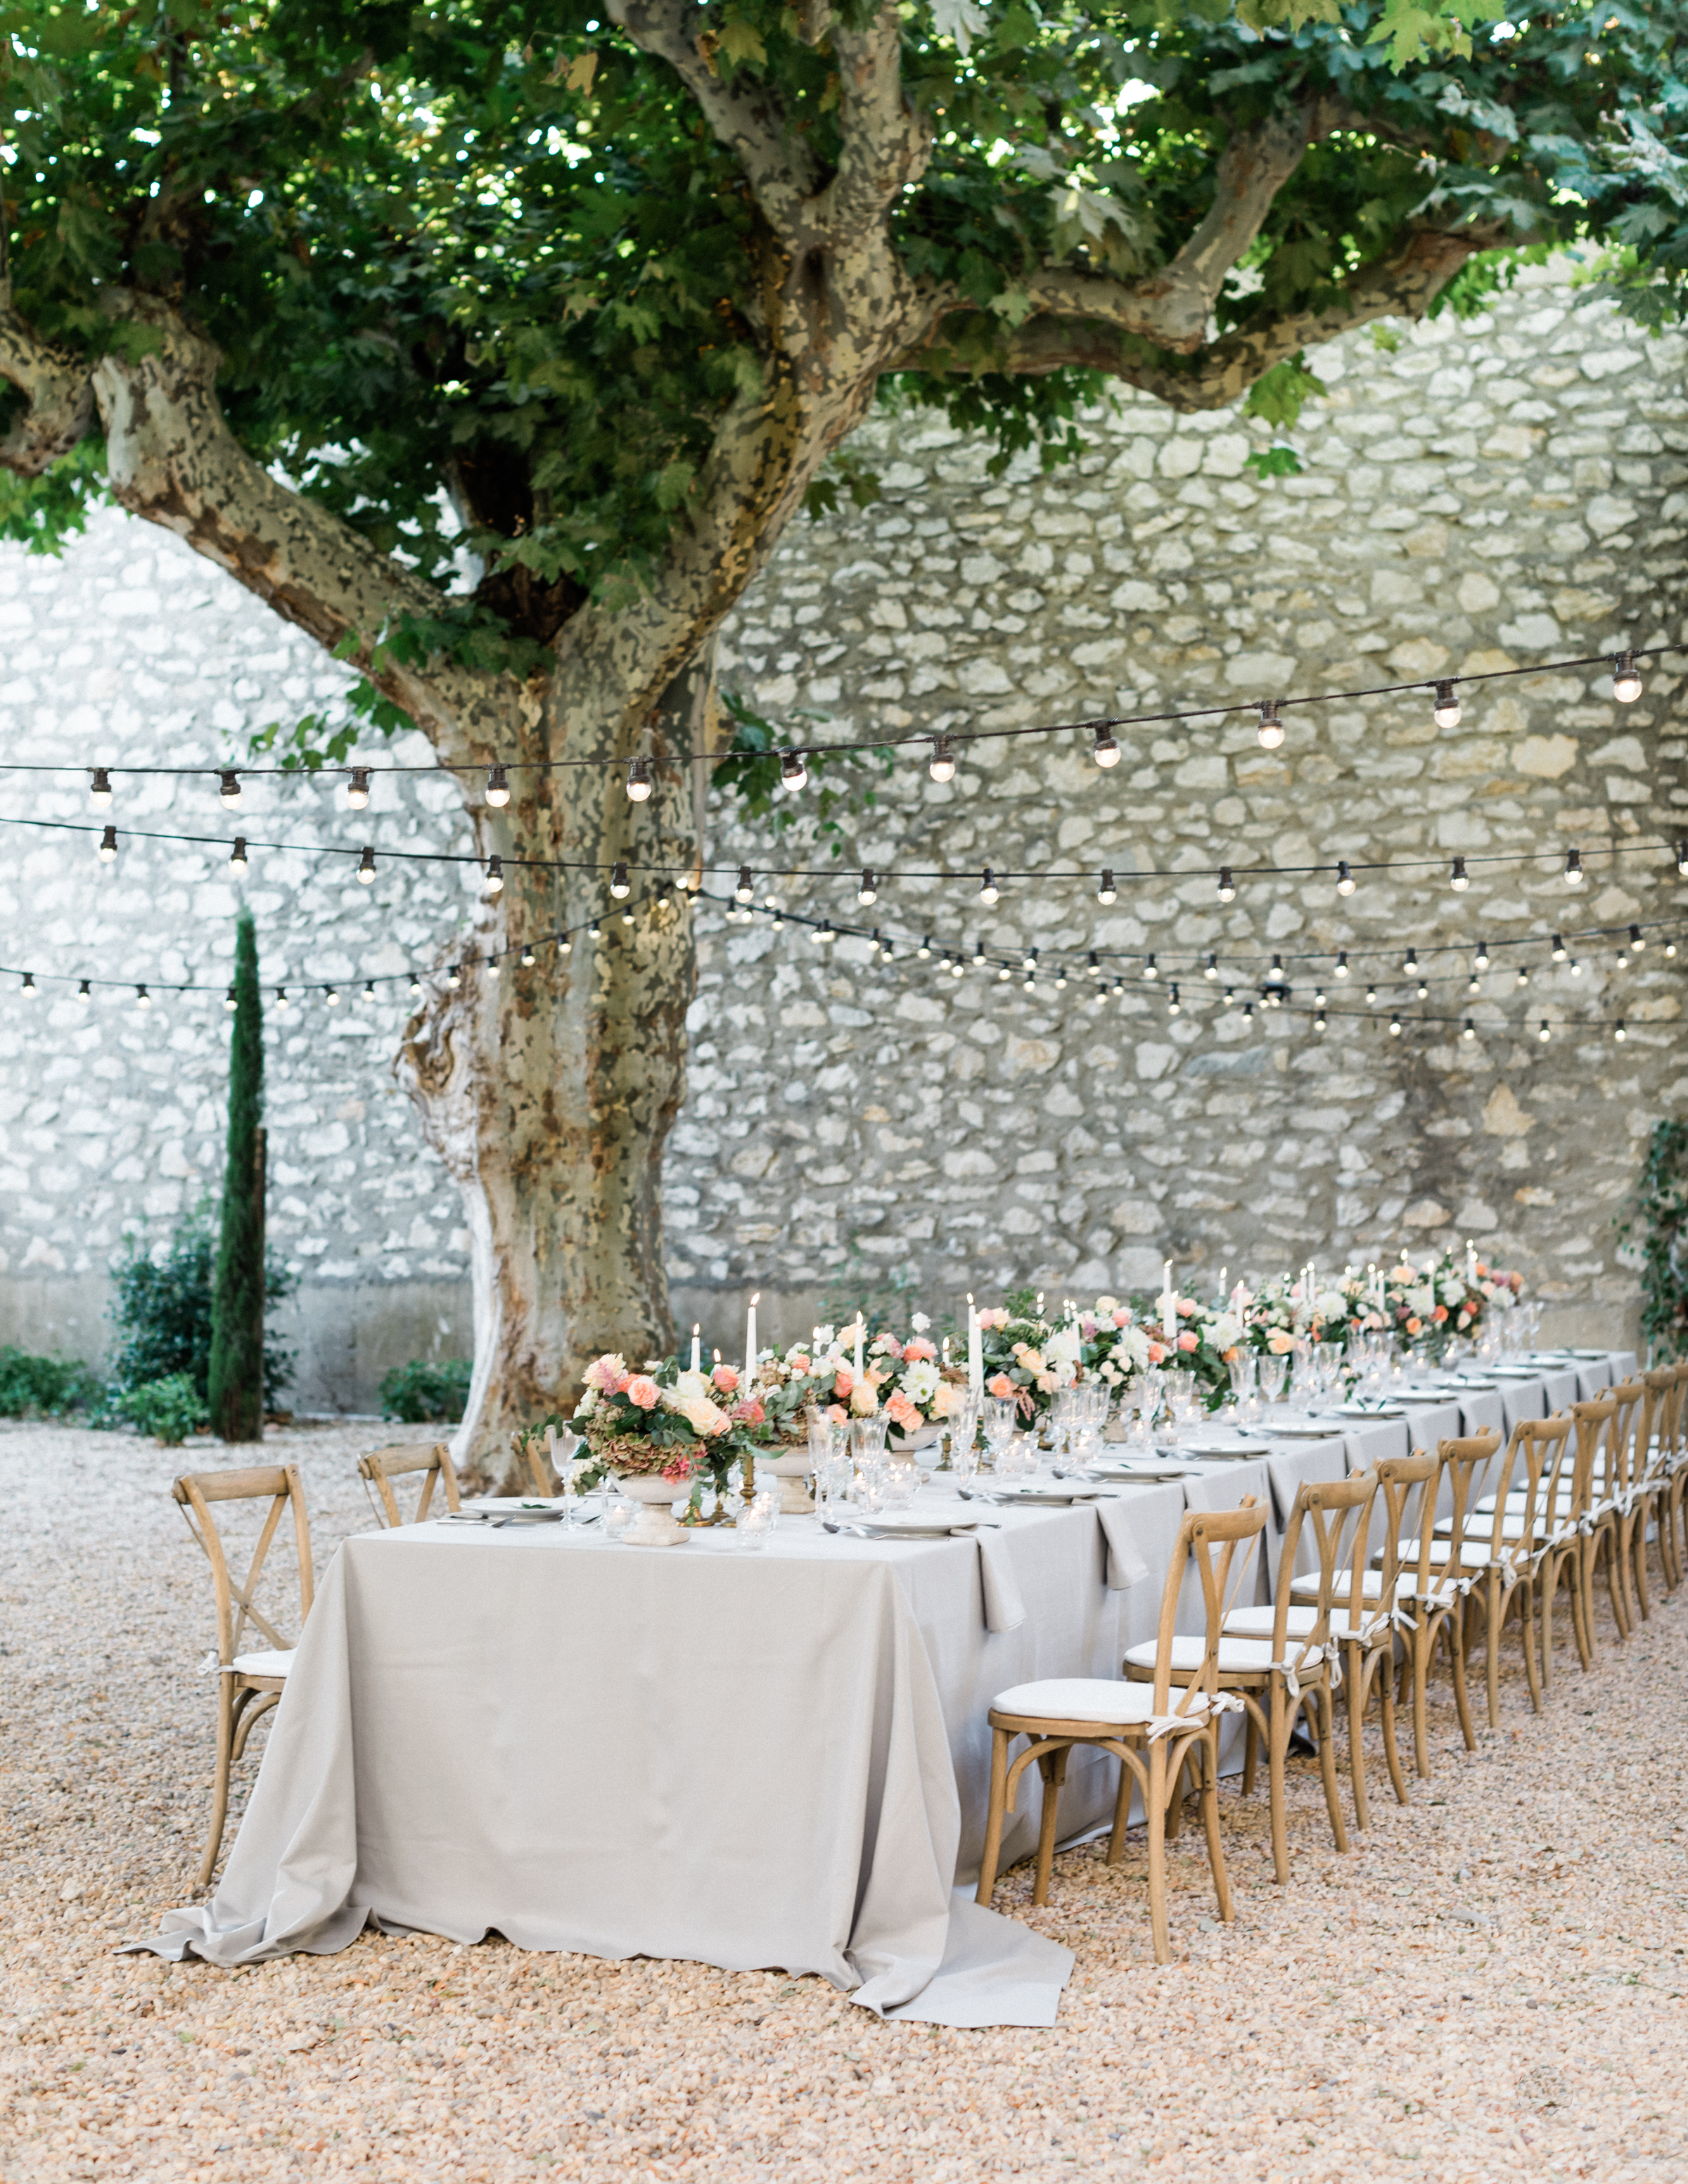 Provence_Wedding_(c)_Rory_Wylie-41.jpg